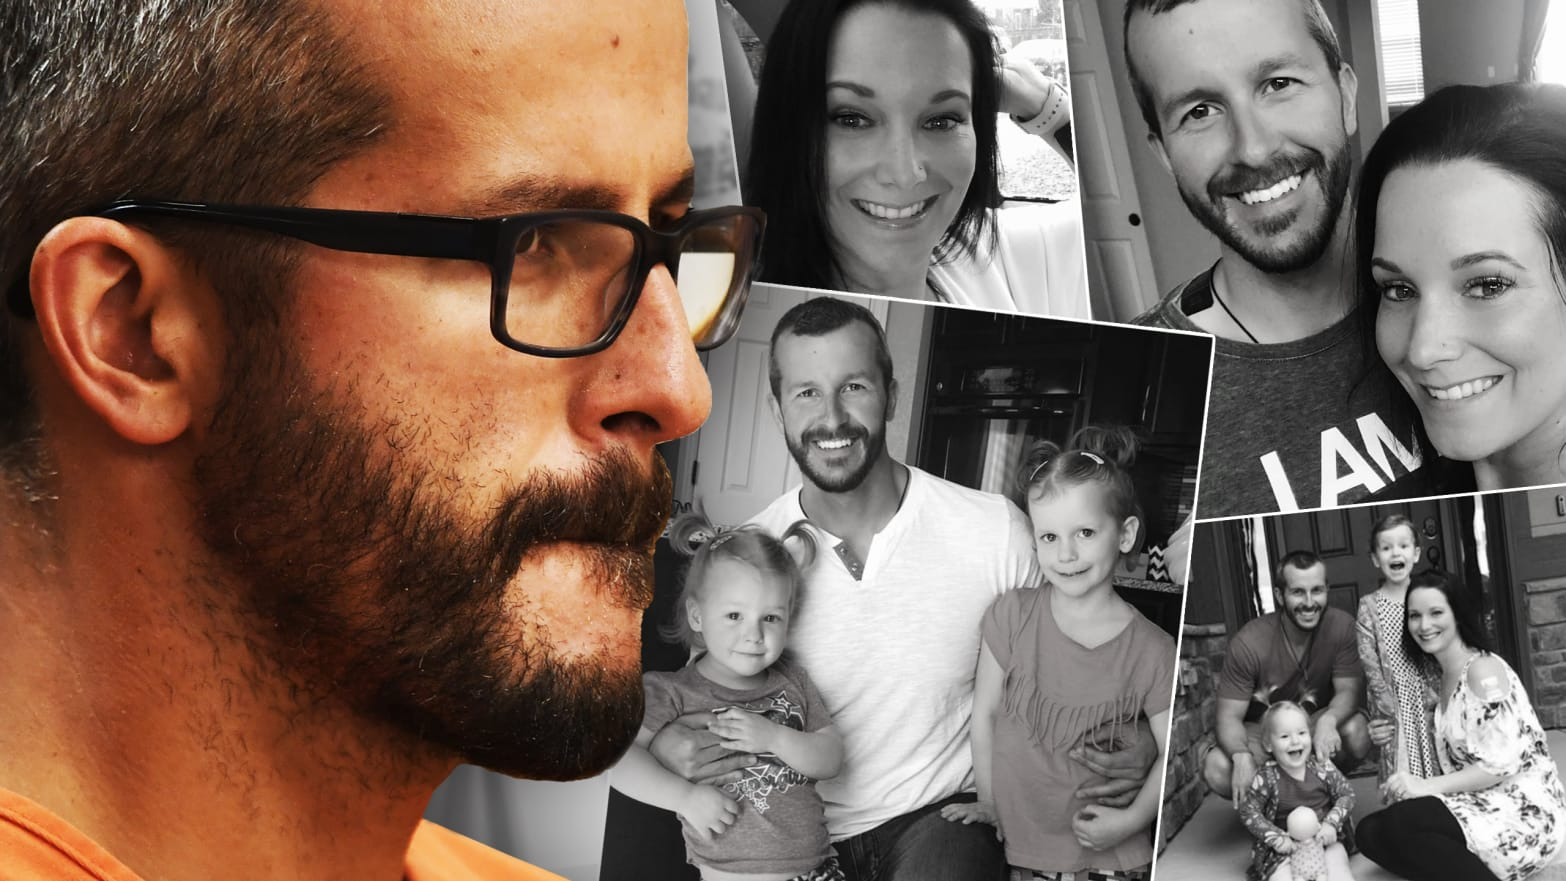 Did Killer Colorado Dad Chris Watts Lead a Double Life?